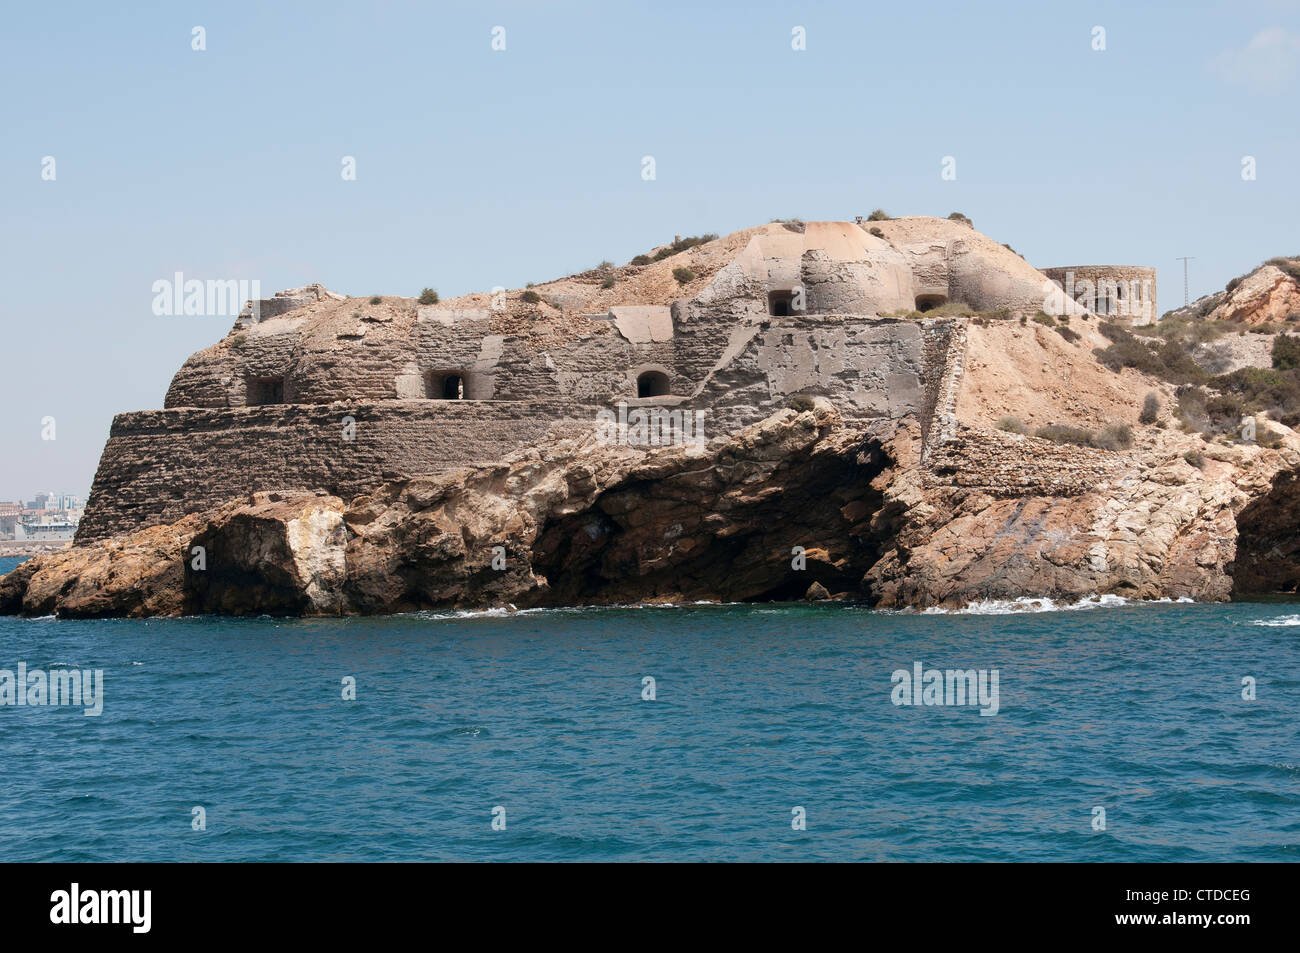 Coastal fortifications Cartagena Harbour southern Spain - Stock Image